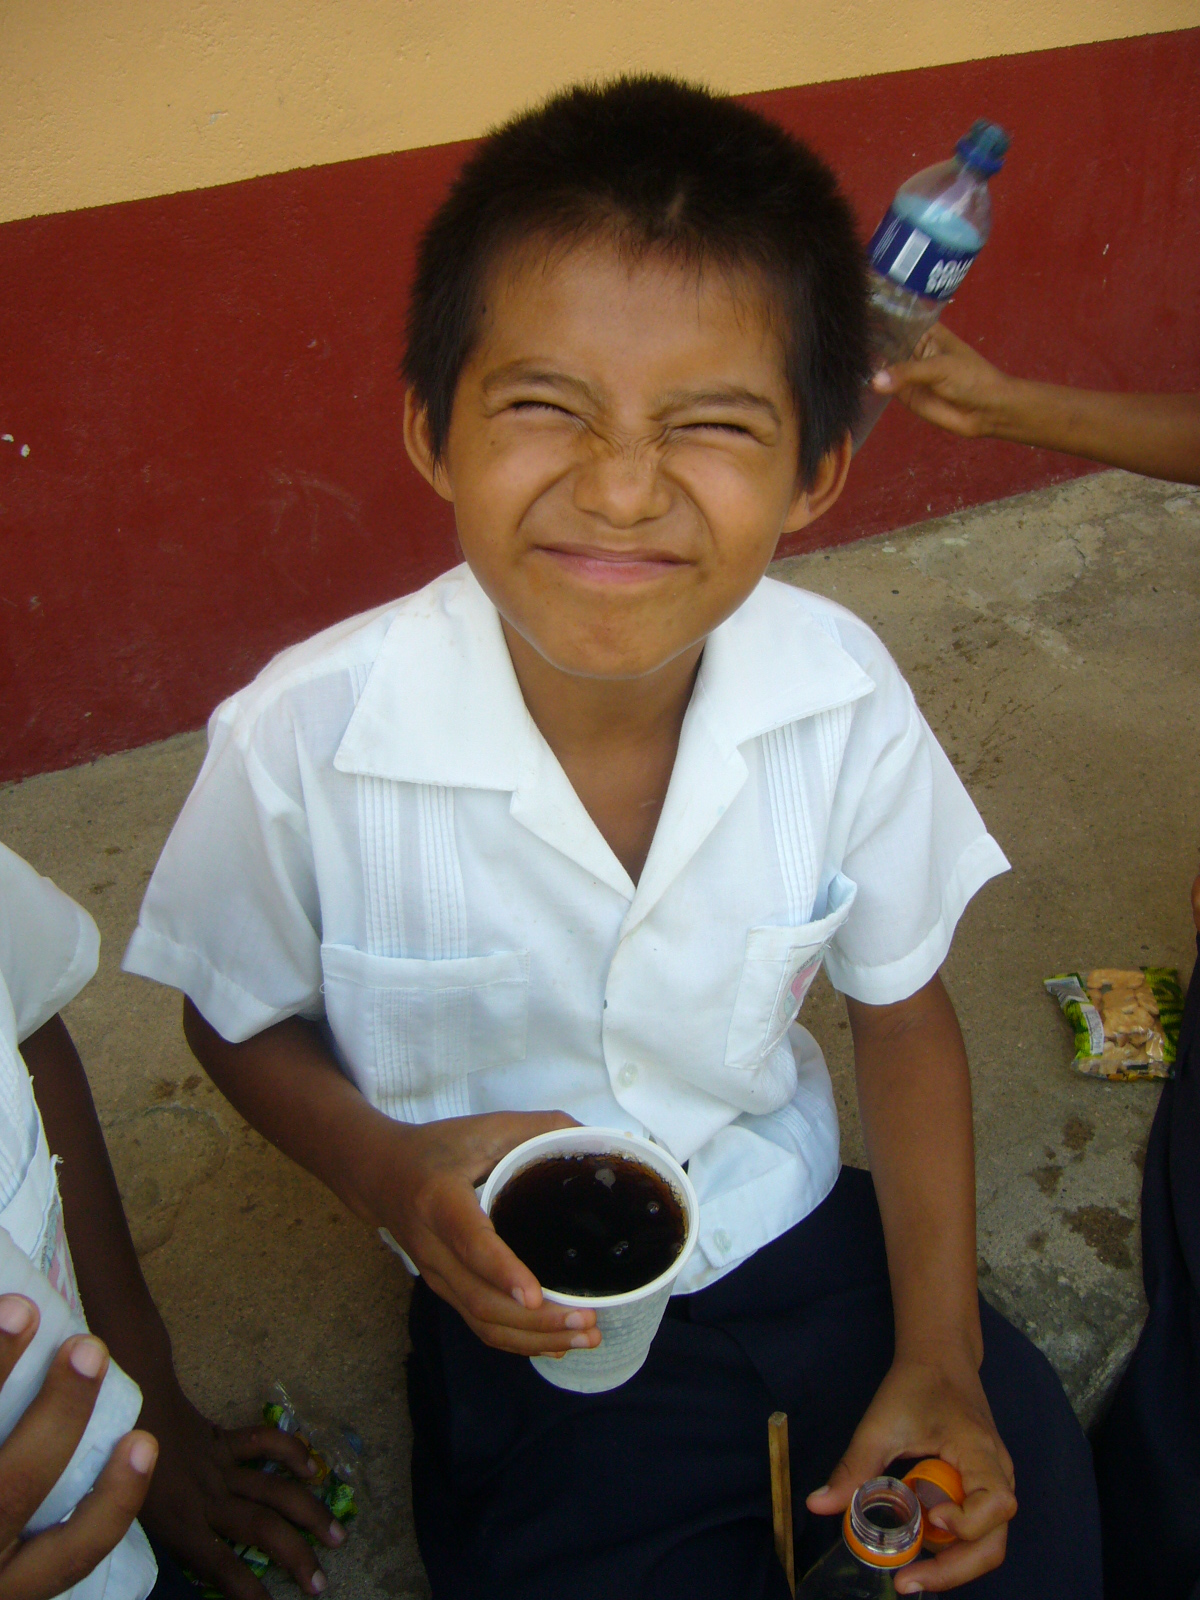 Vicente in 2008 (when he was just 8 years old!) enjoying a snack.